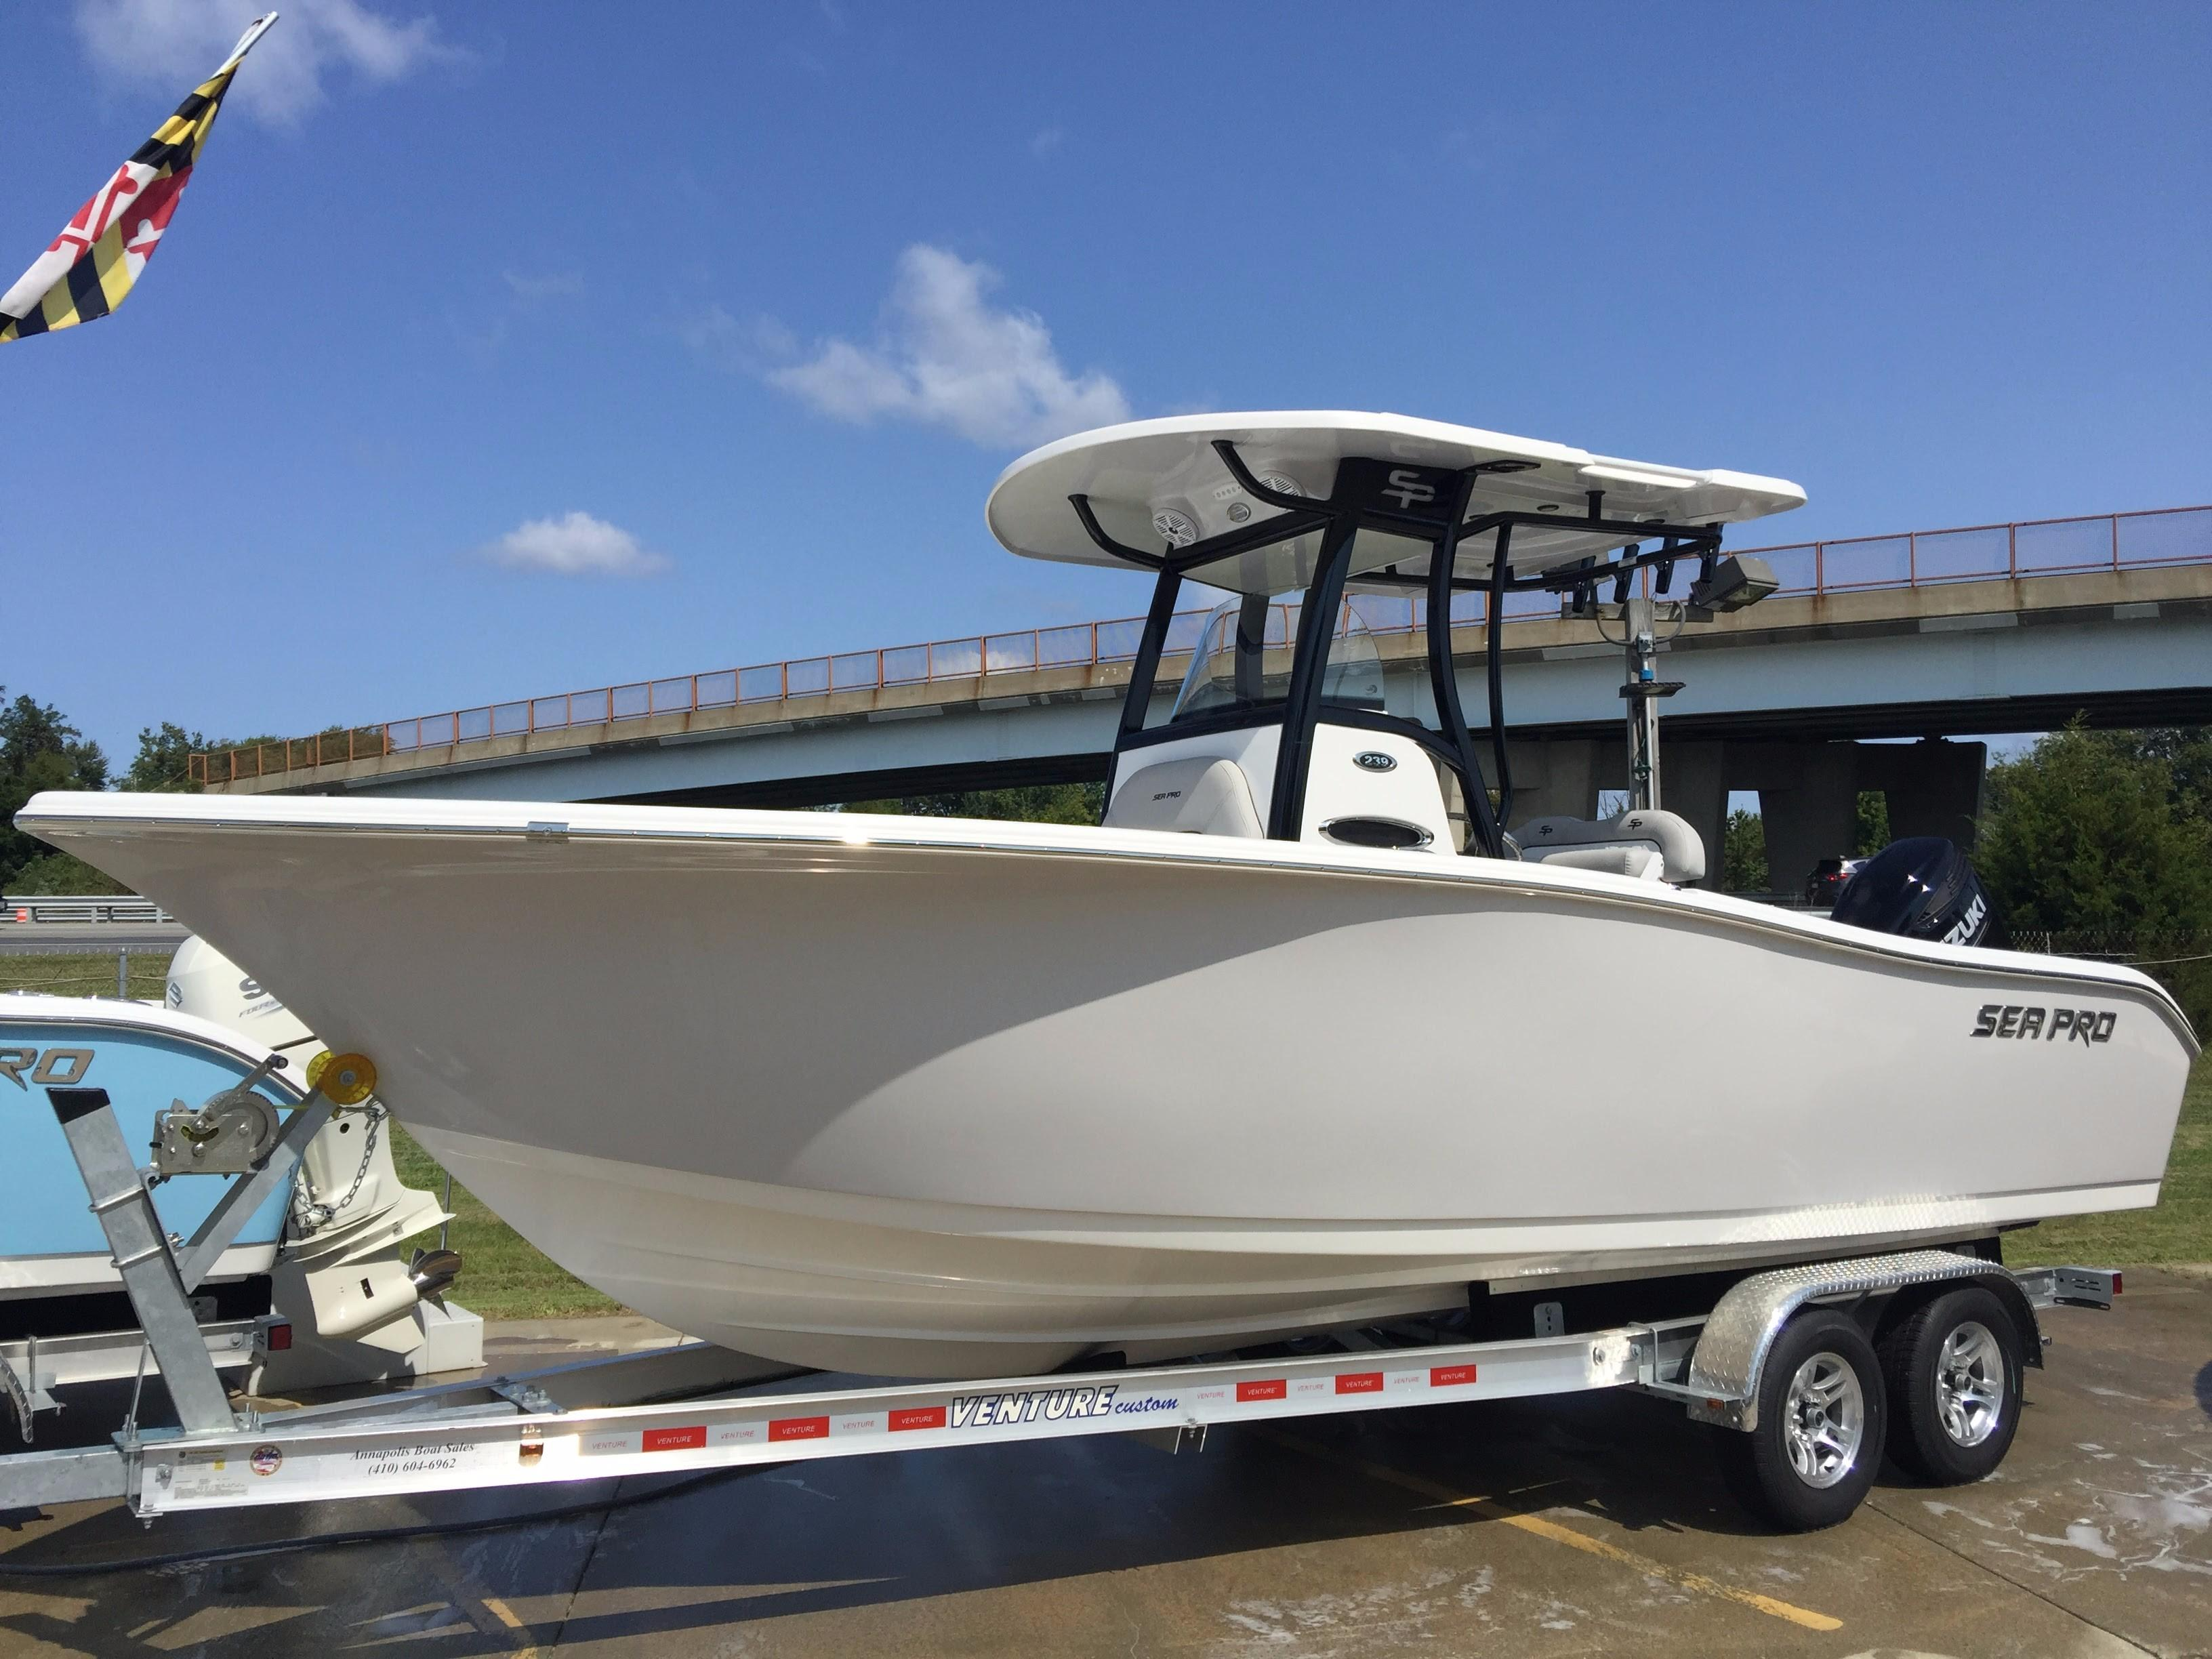 6364383_20170911083256401_1_XLARGE&w=3264&h=2448&t=1505148372000 sea pro boats for sale yachtworld  at gsmportal.co